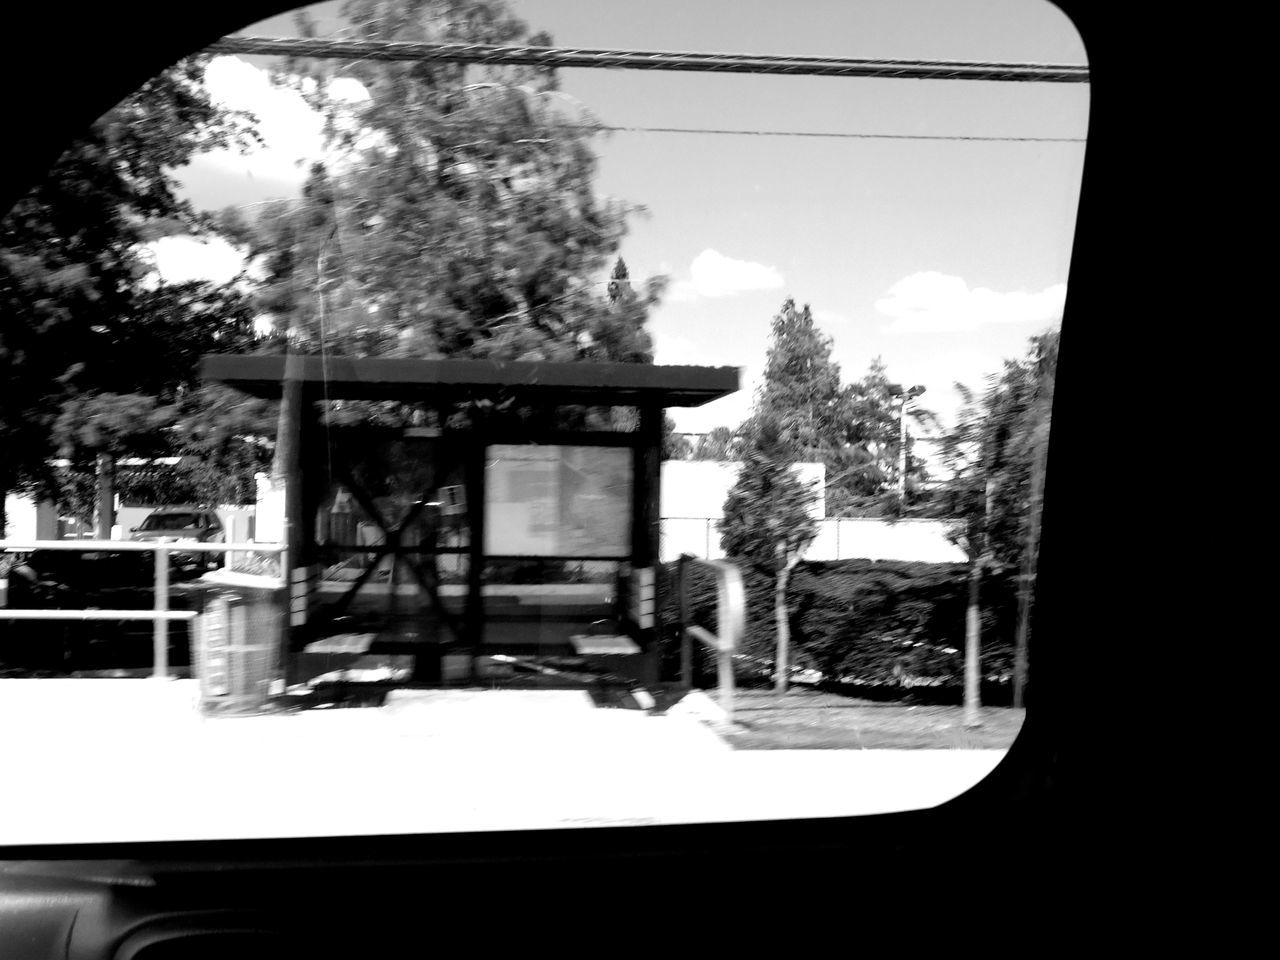 Monochrome Photography The Drive On The Road Motion Motion Blur In The Car Through The Looking Glass Car Window Car Window Views Bus Stop Bus Shelter Nature Light And Shadow Transportation Sunny Day Florida Nature Floridaphotographer Florida Street Streetphotography Snapshots Of Life Blurred Motion Outdoors Random Acts Of Photography Road